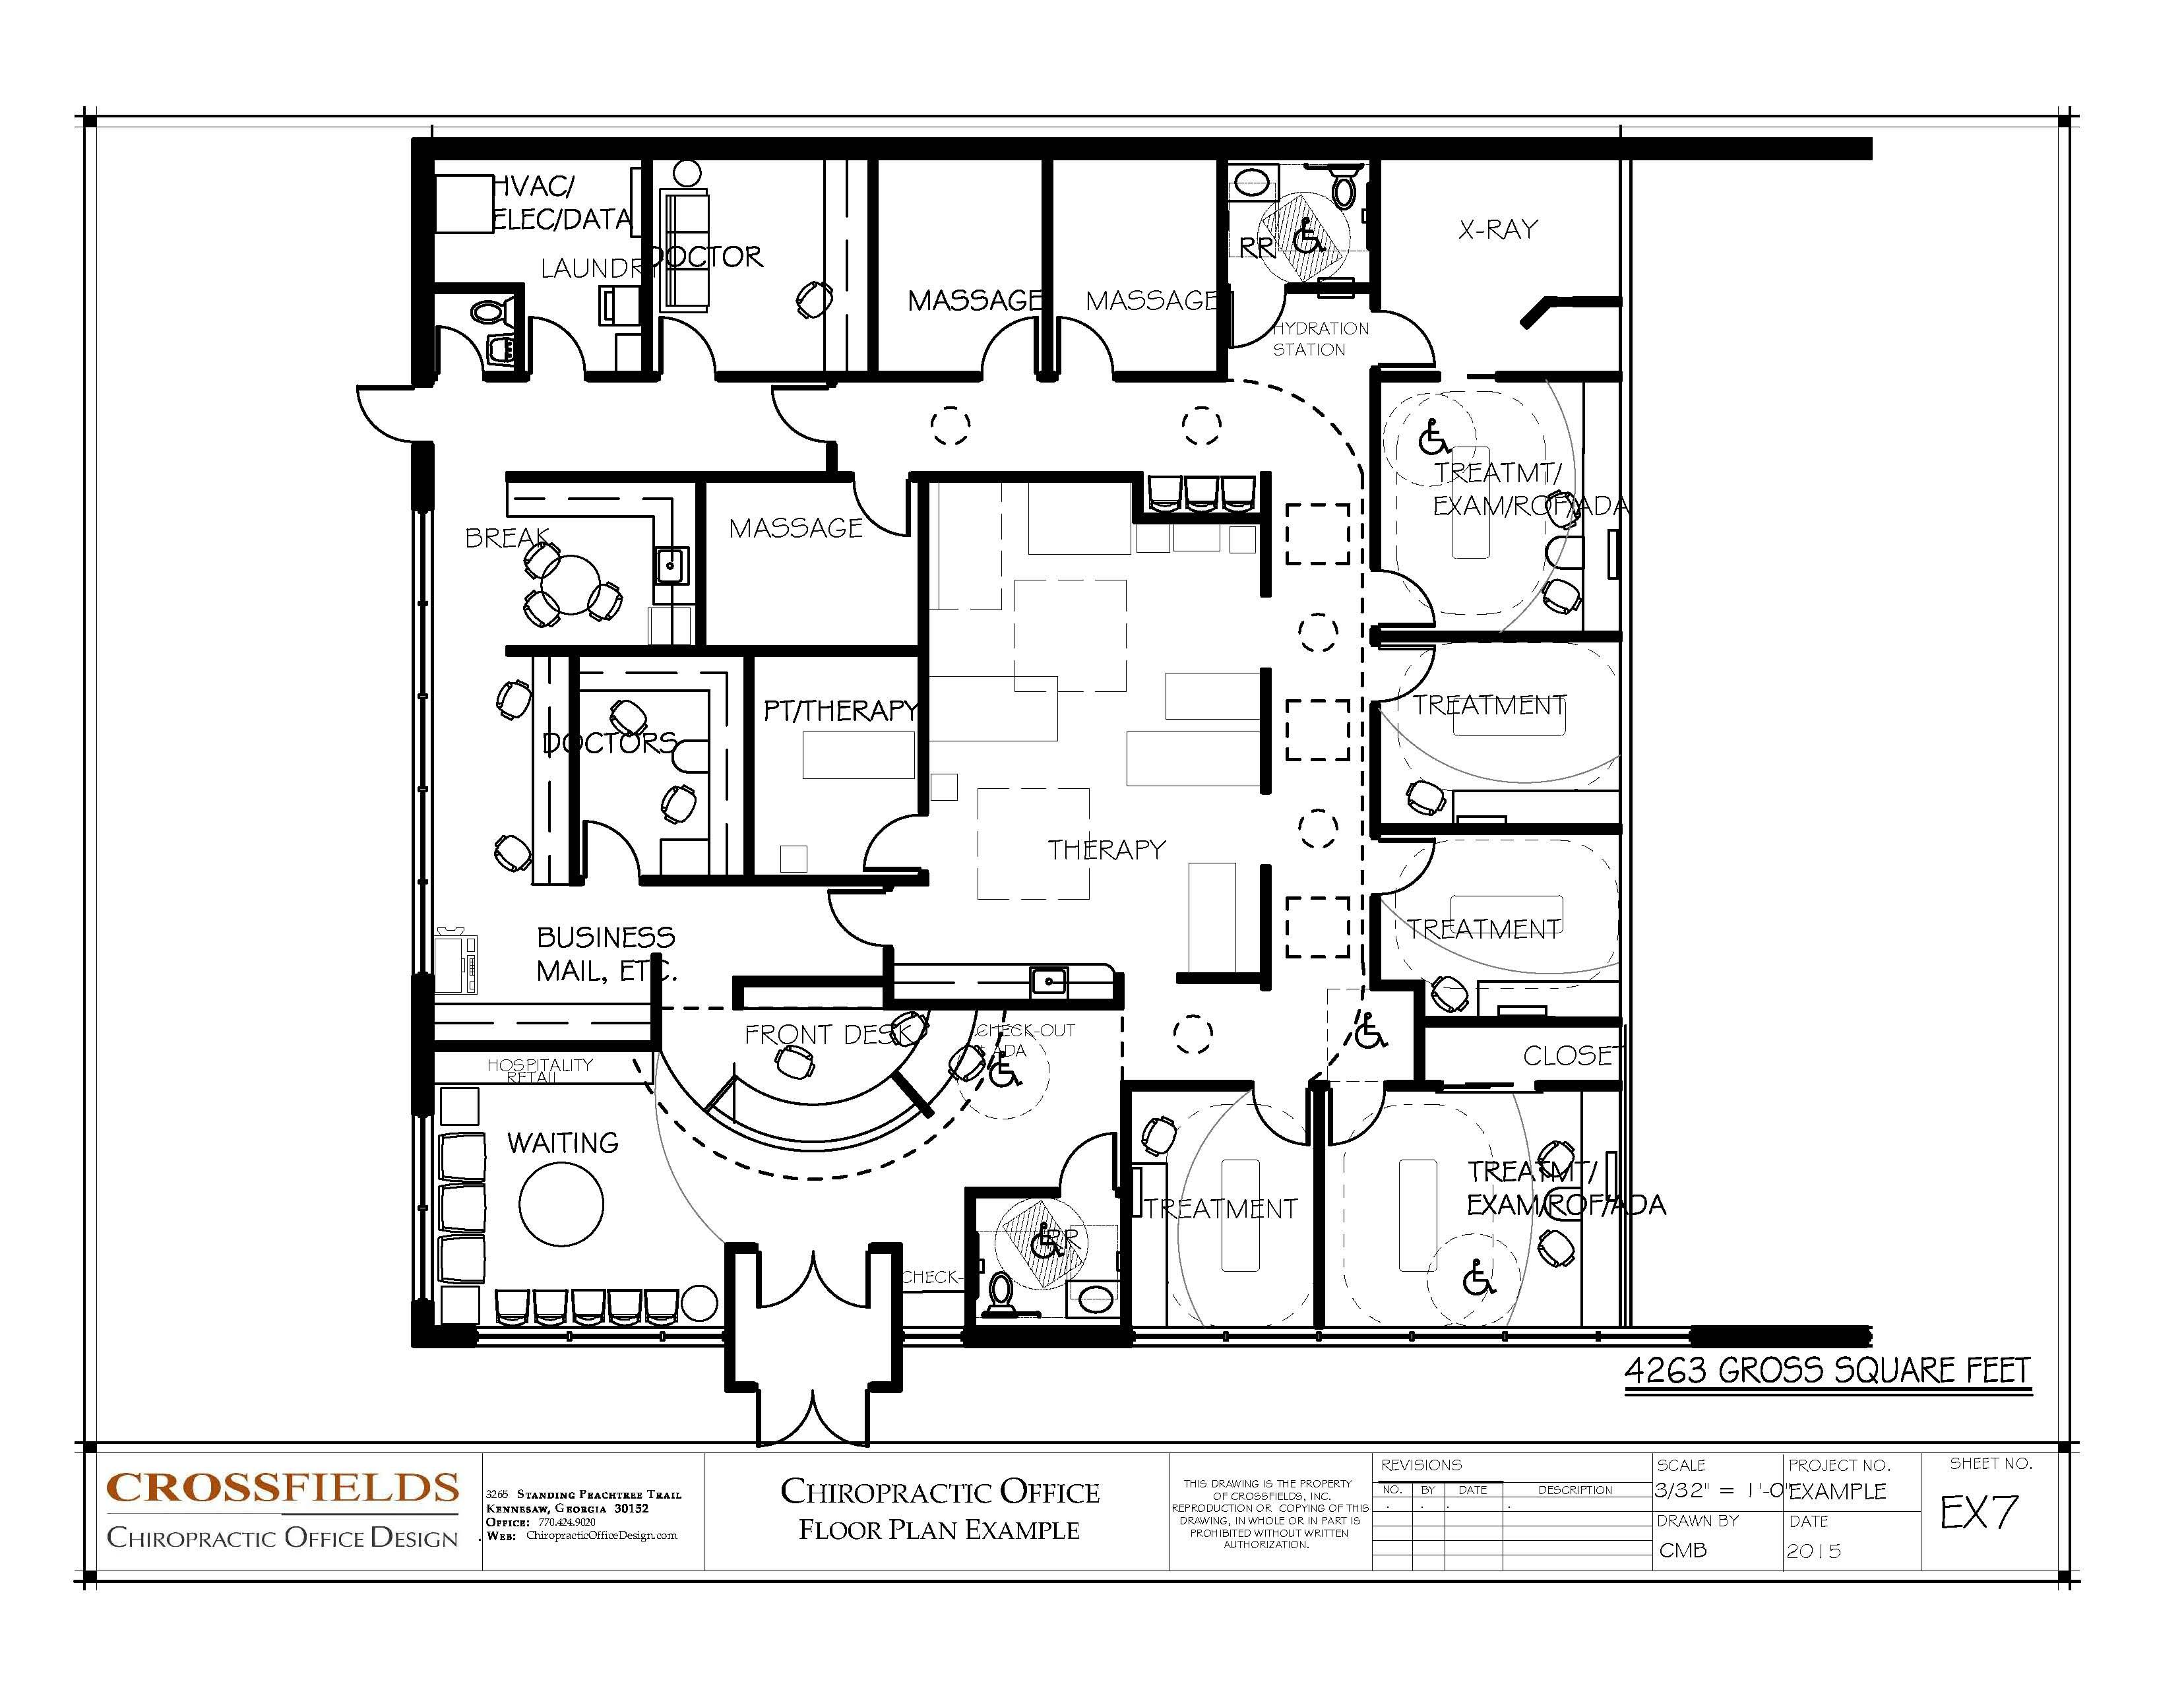 Floor Plans For Physical Therapy Clinic: Pin By Hart Owen On Healthcare